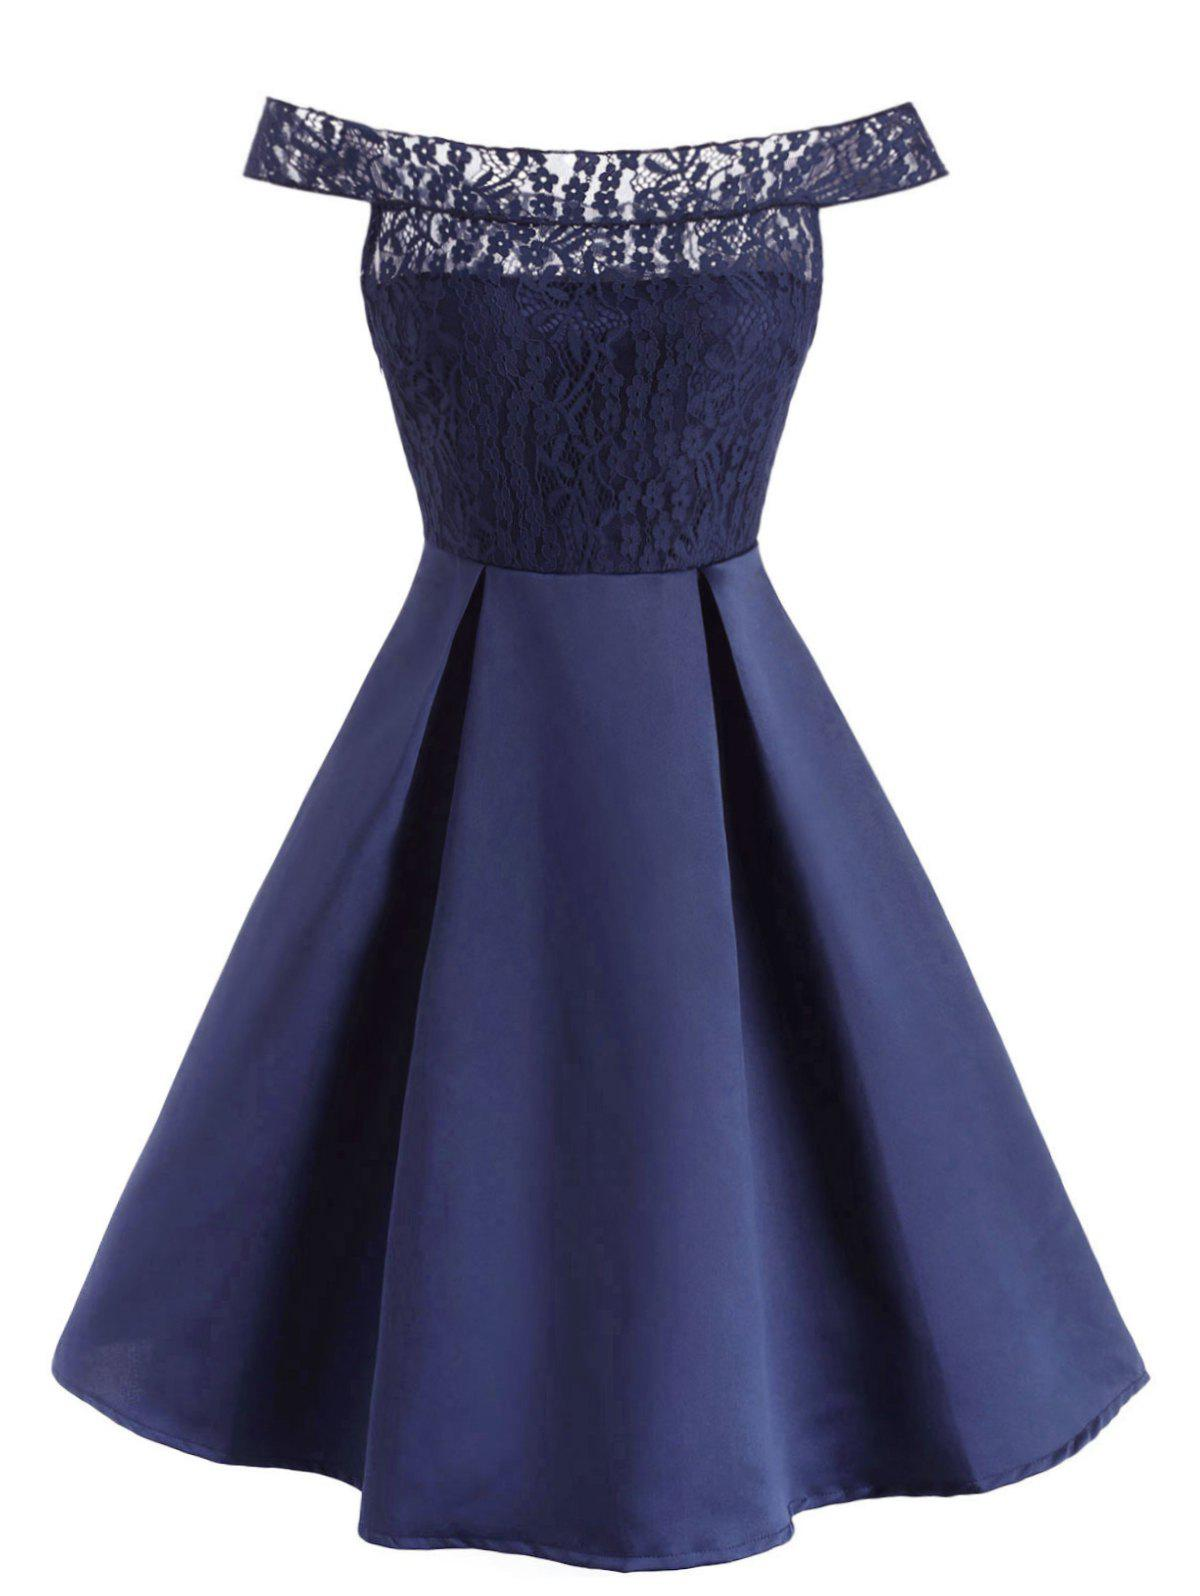 Off The Shoulder Lace Panel Ball Gown Dress - DEEP BLUE M